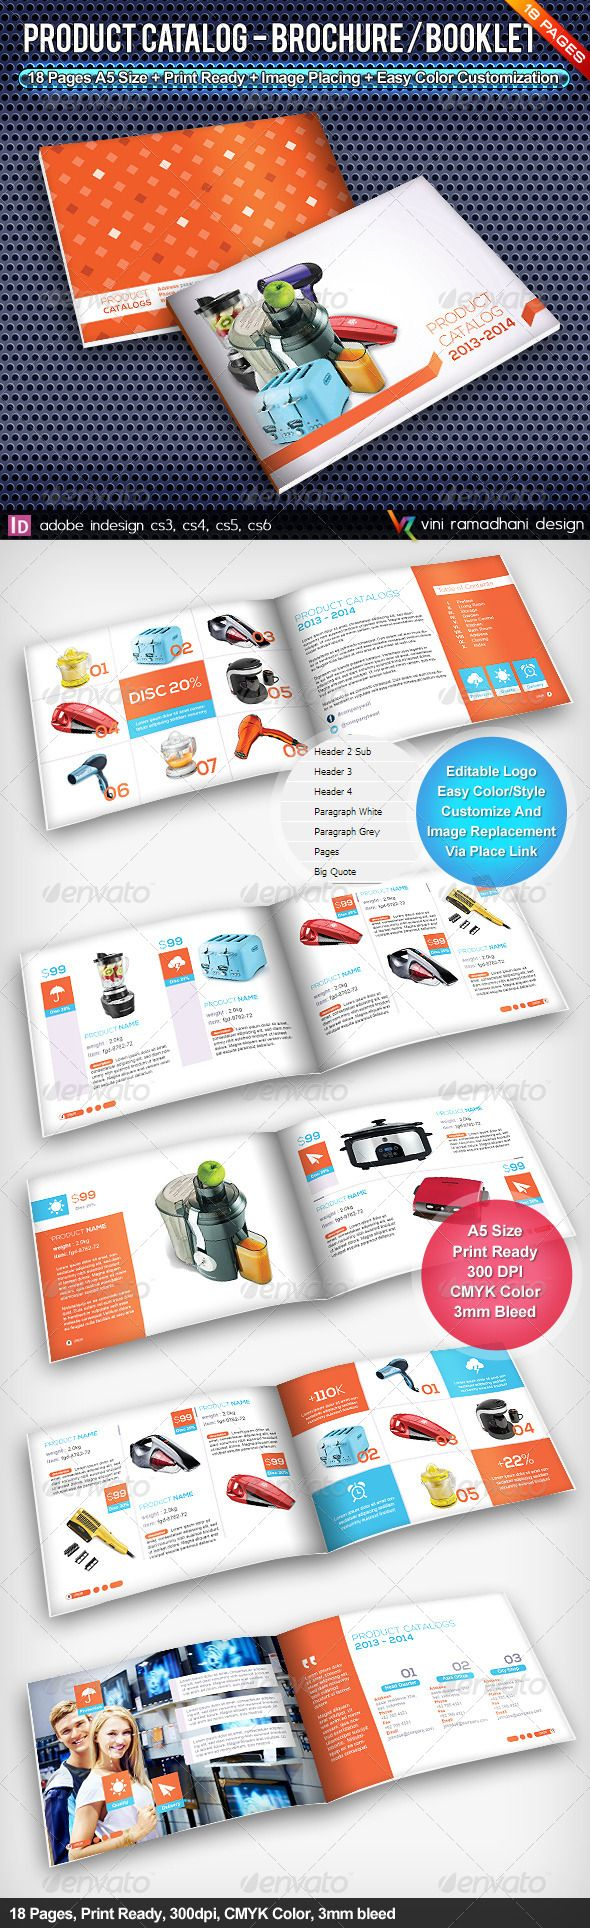 product catalogs brochure or booklet catalogs brochures